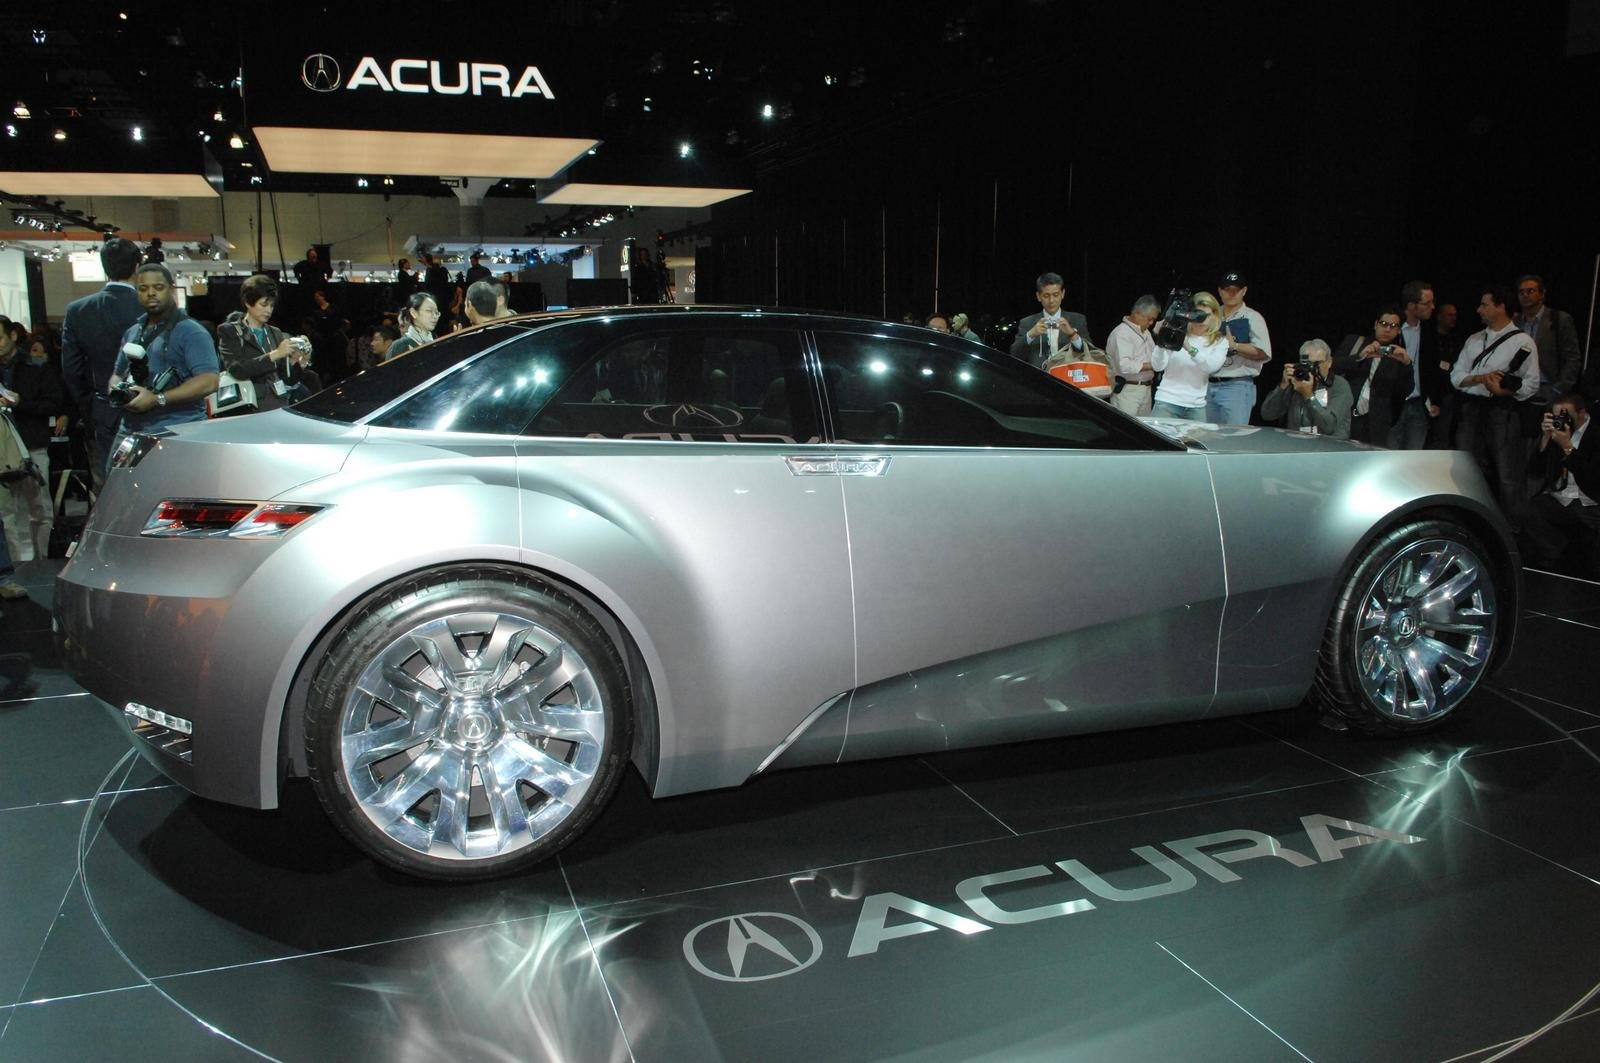 http://pictures.topspeed.com/IMG/crop/200701/2007-acura-advanced-sport-1_1600x0w.jpg